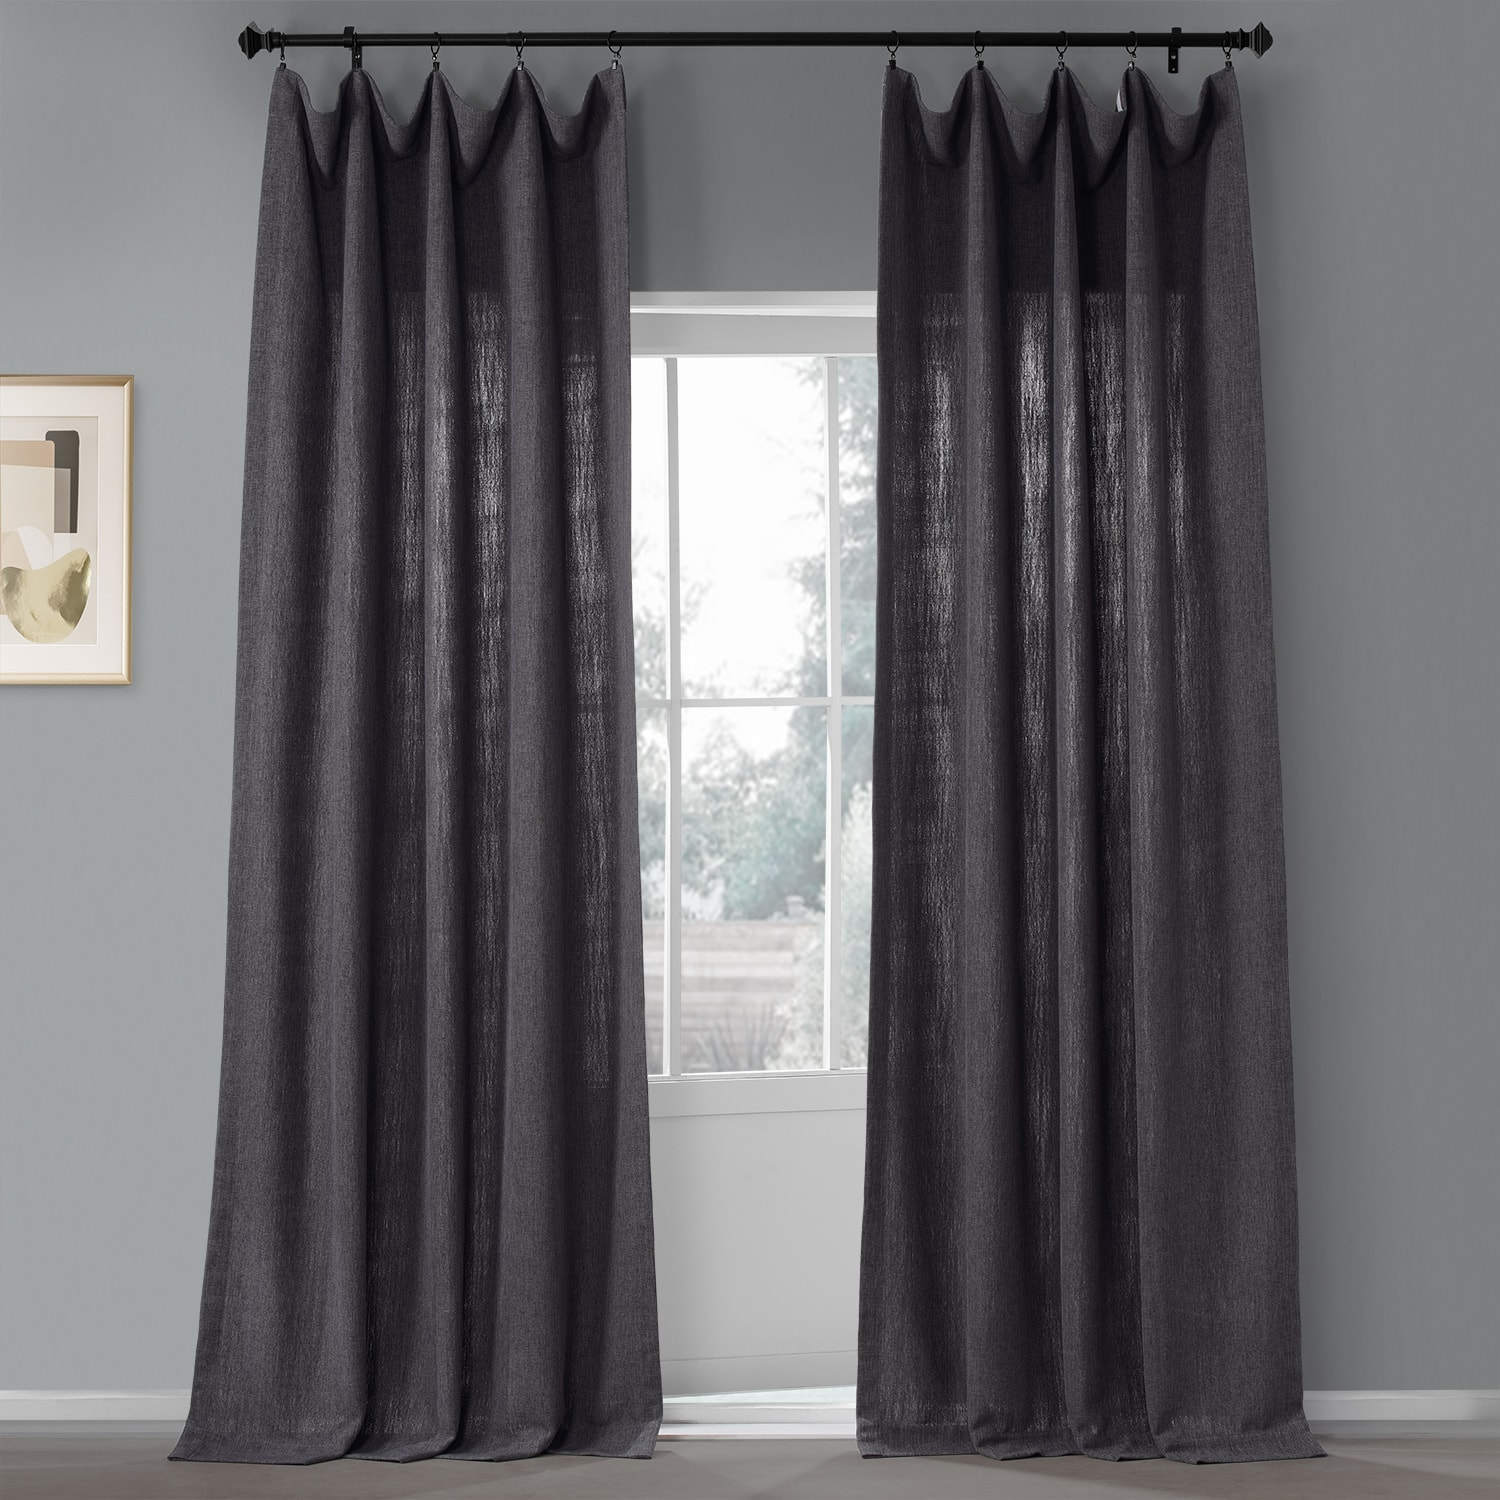 Nightshade Grey Pebble Weave Faux Linen Curtain